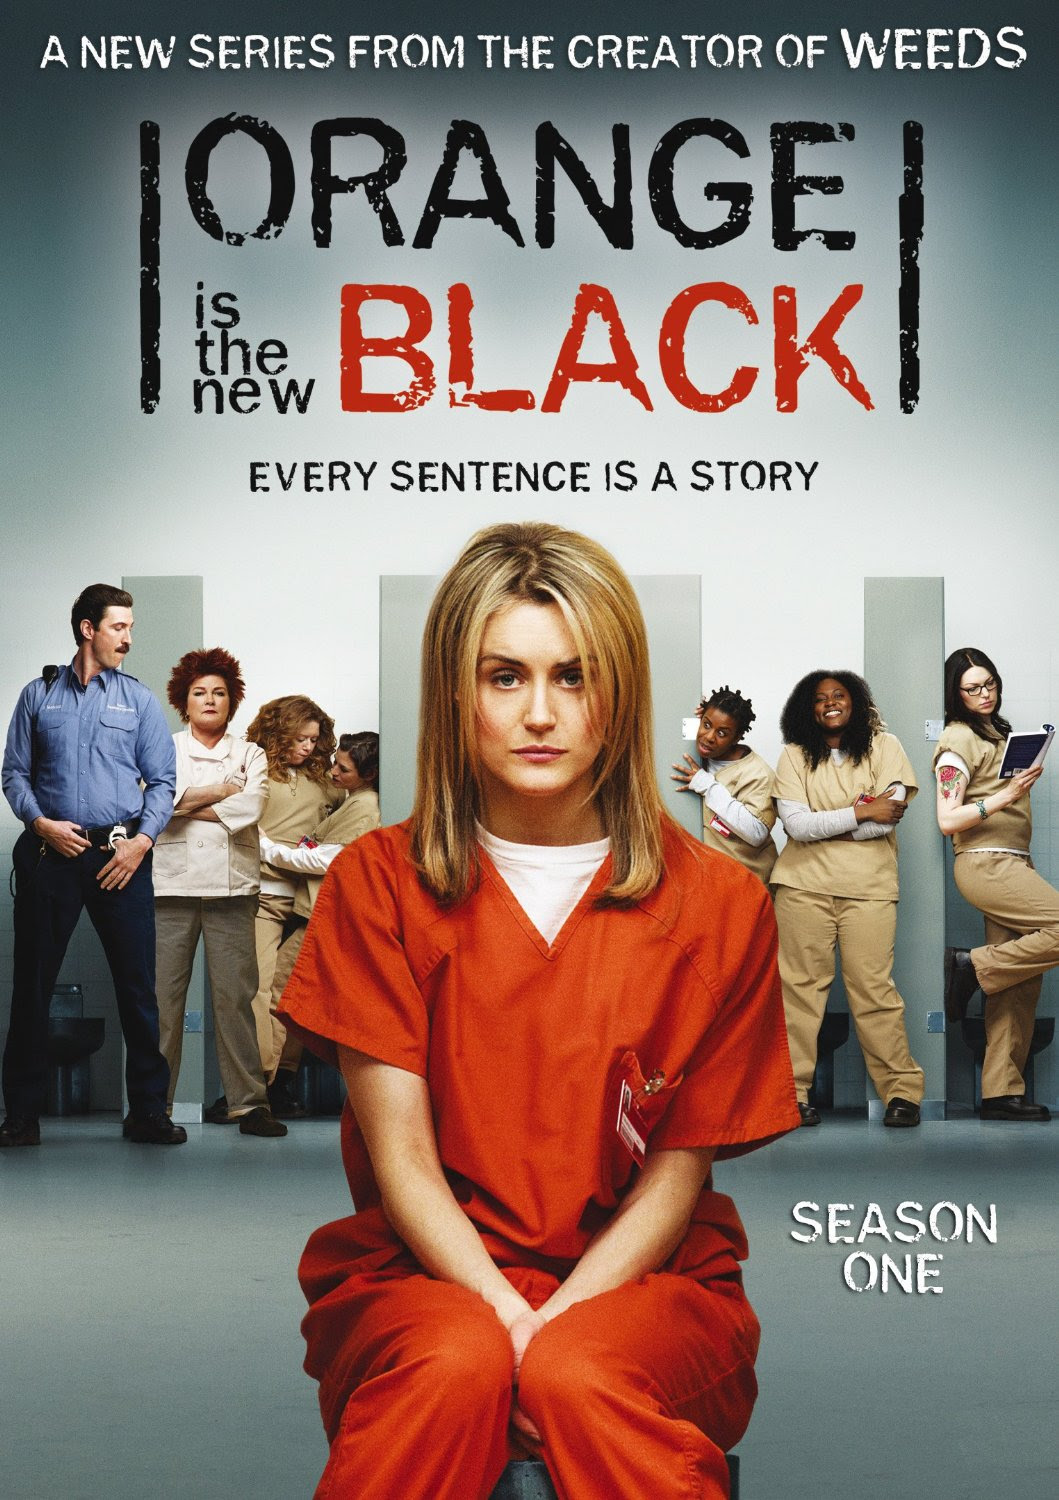 http://tvstock.net/sites/default/files/poster-orange-is-the-new-black-season-1.jpg